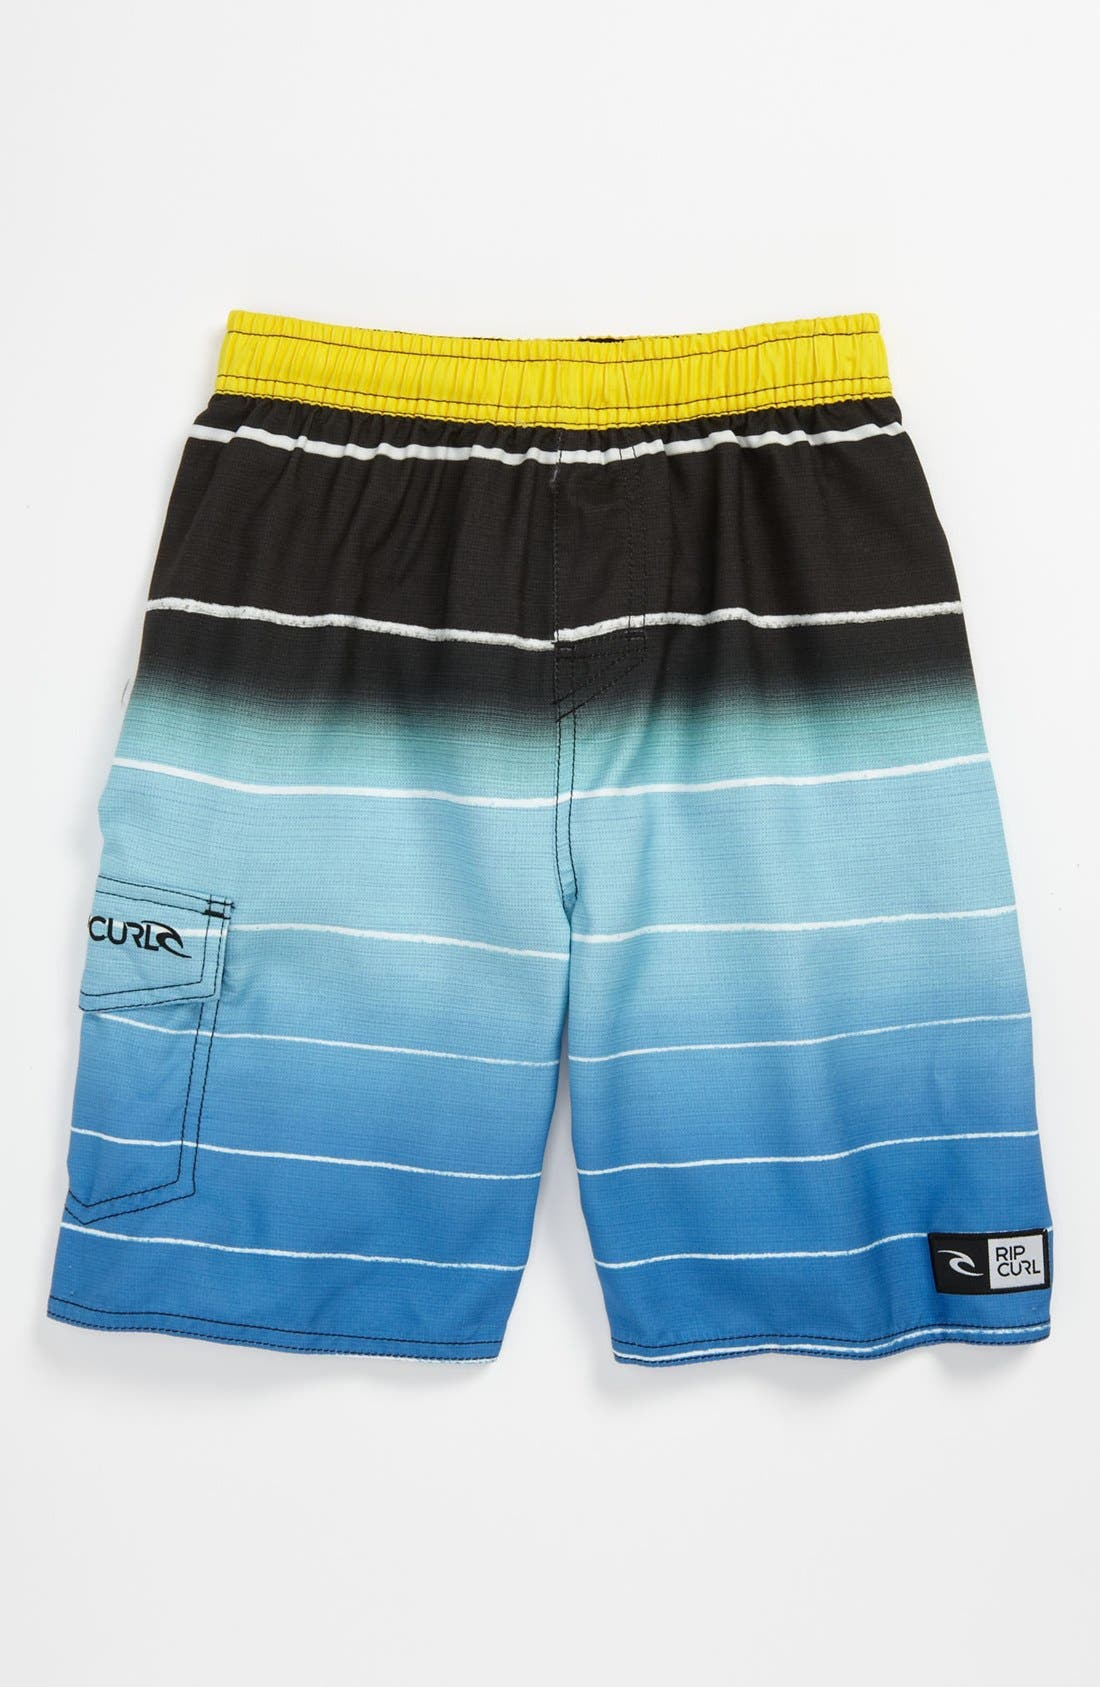 Alternate Image 1 Selected - Rip Curl Board Shorts (Little Boys)